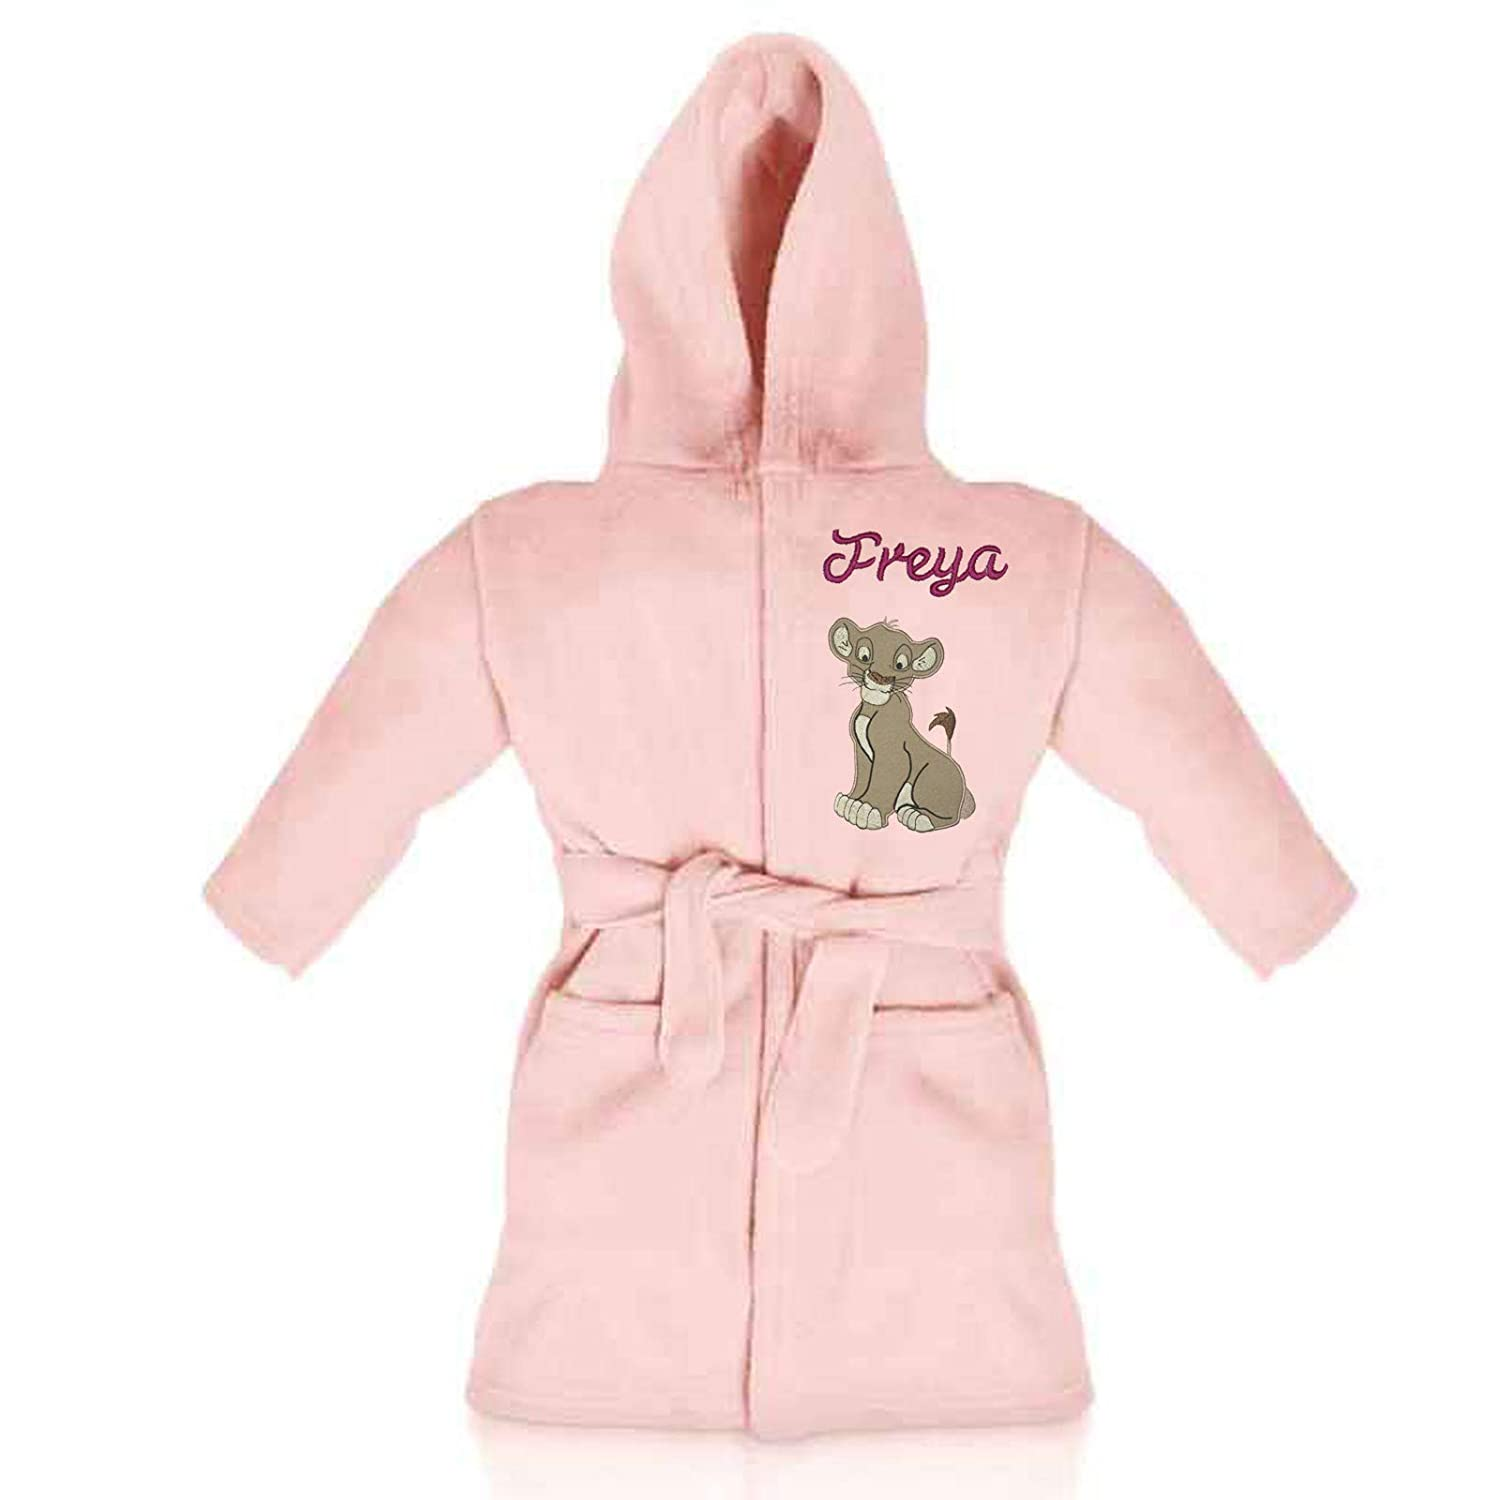 Girls Personalised Fleece Dressing Gown//Bathrobe Lion King Oh Sew Simple Simba Available in 5 Sizes